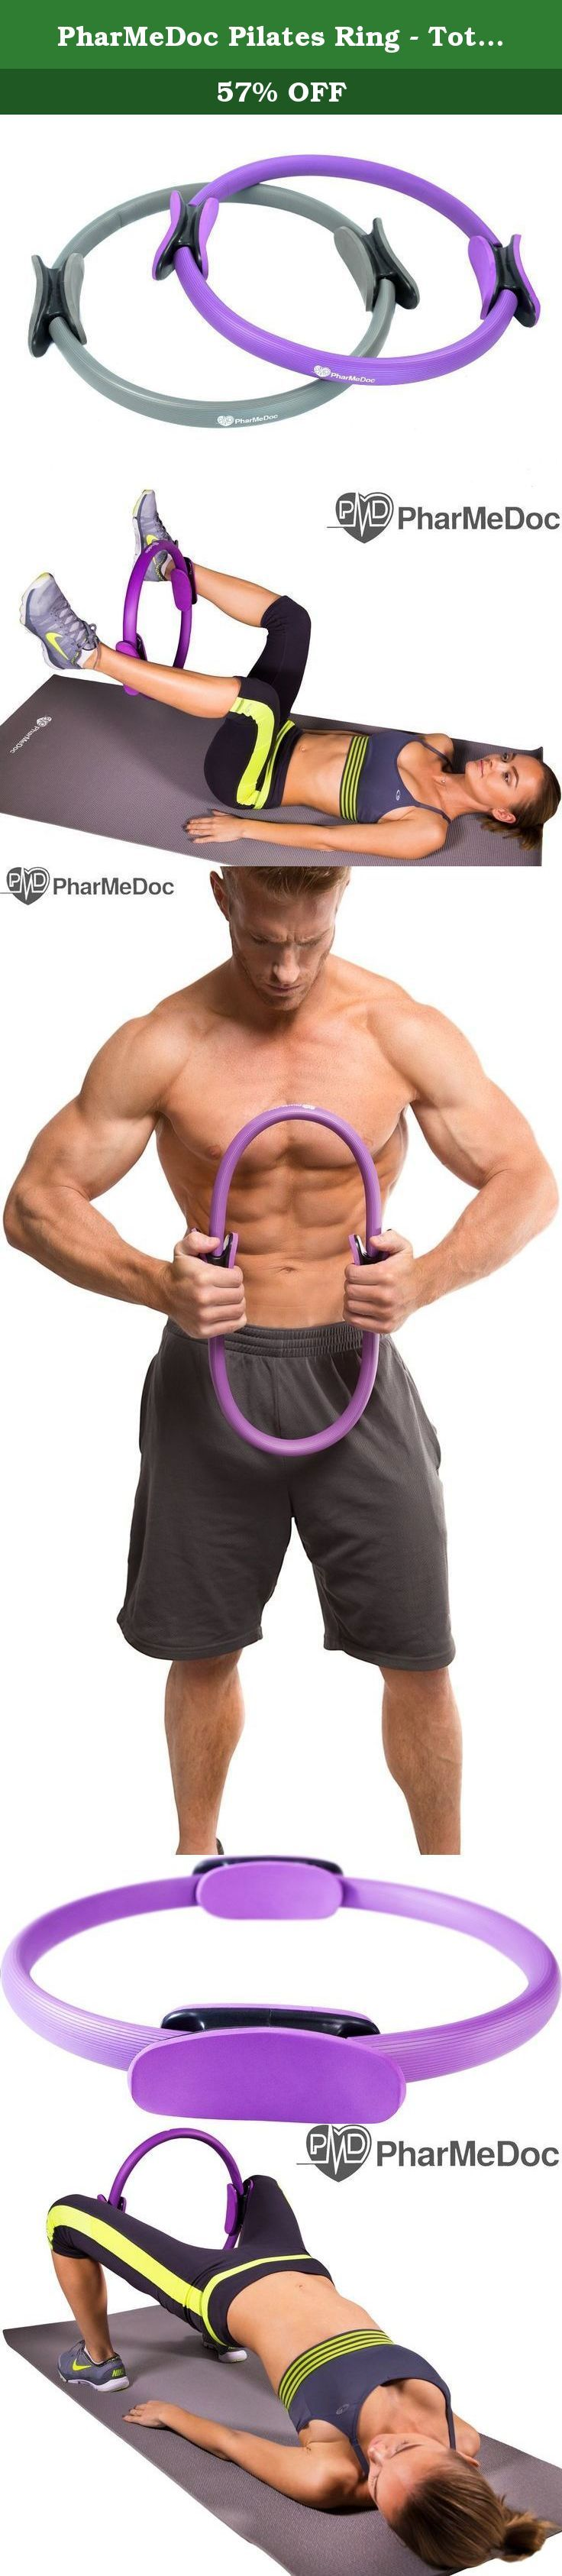 """PharMeDoc Pilates Ring - Total Body Gym - #1 Exercise Fitness Circle to Burn Belly Fat & Toning of Abs, Legs, Arms, Thighs - Resistance Band - Dual Grip Handles - 15"""" - Purple. Light yet Durable Glass Fiber Composite Ring • Sturdy Materials protected by a strong plastic coating and covered by an ultra-soft and breathable EVA foam cover to handle all levels of use • Engineered build designed to last without snapping or losing resistance over extended periods of exercise, allowing you to…"""